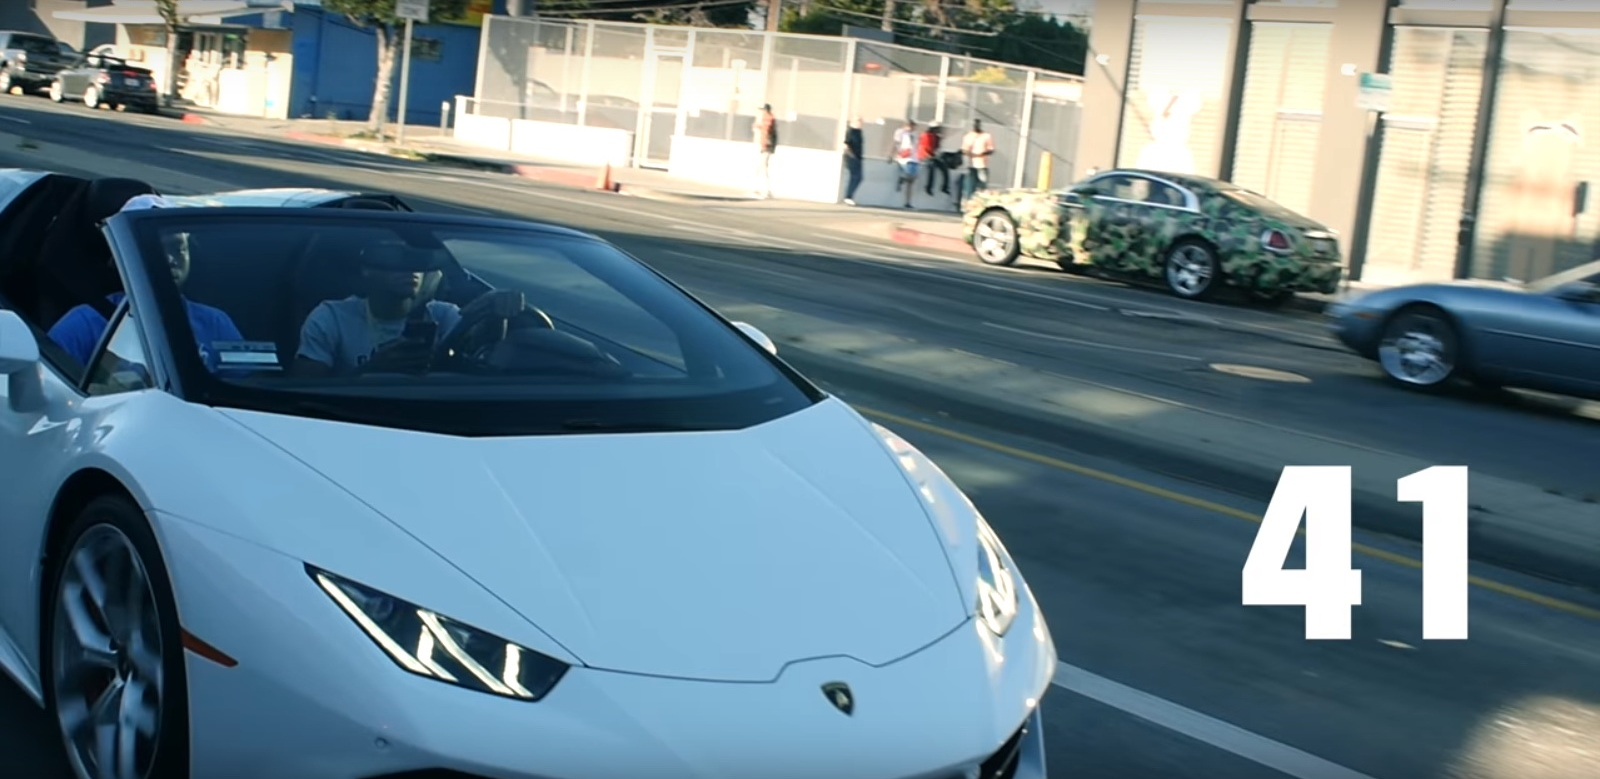 Lamborghini Huracán - 41 - YoungBoy Never Broke Again Official Music Video Product Placement